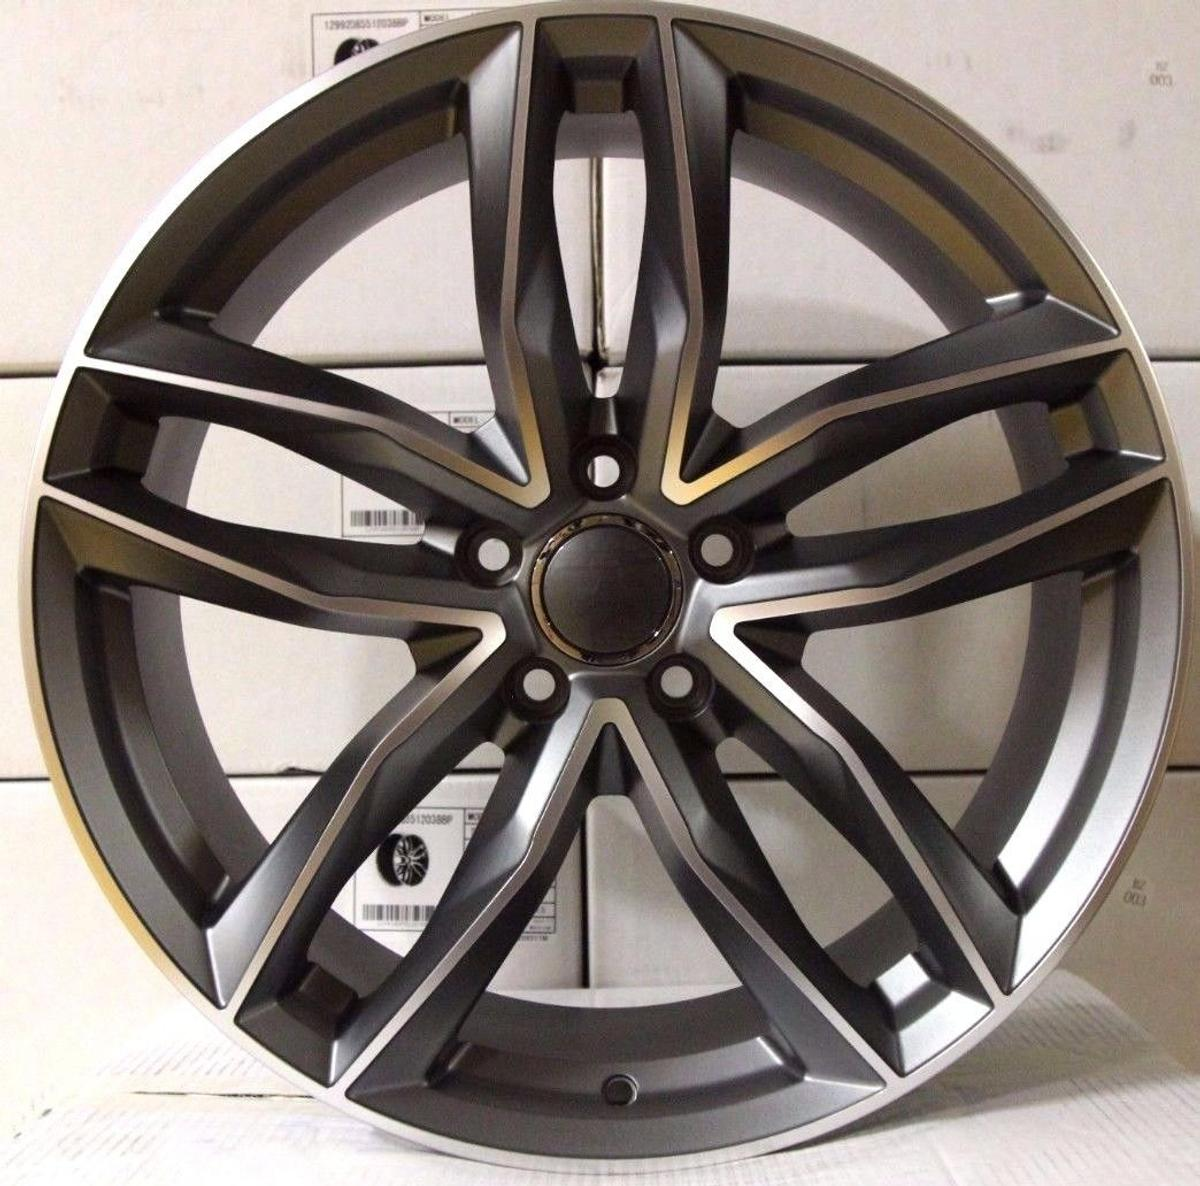 Audi Rs6 Style Alloy Wheels In Wf3 Wakefield For 395 00 For Sale Shpock